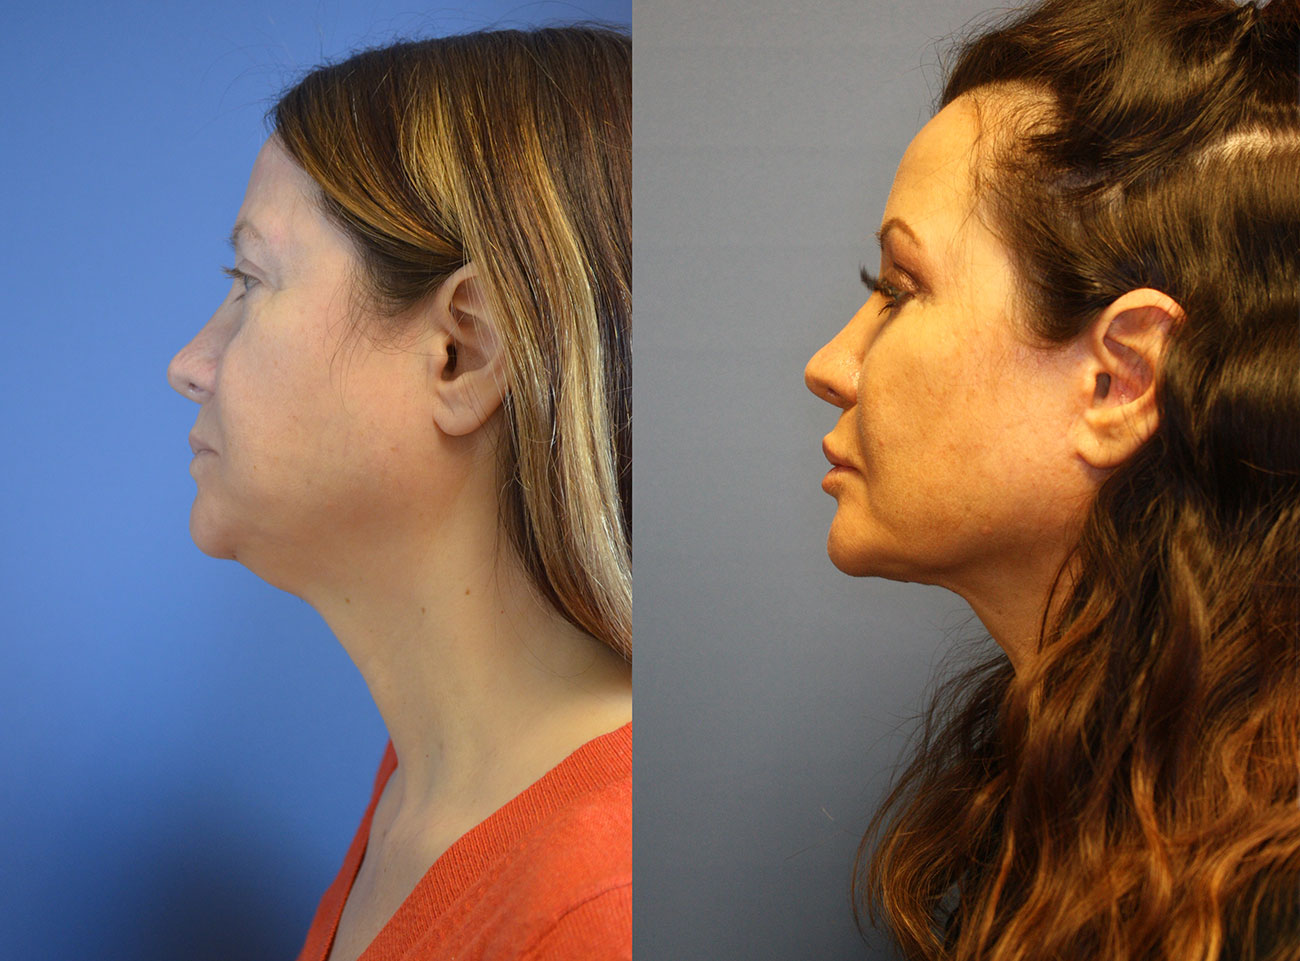 Owsley_Plastic_Surgery_Coeur_d_Alene_Idaho_Facelift_Procedure6